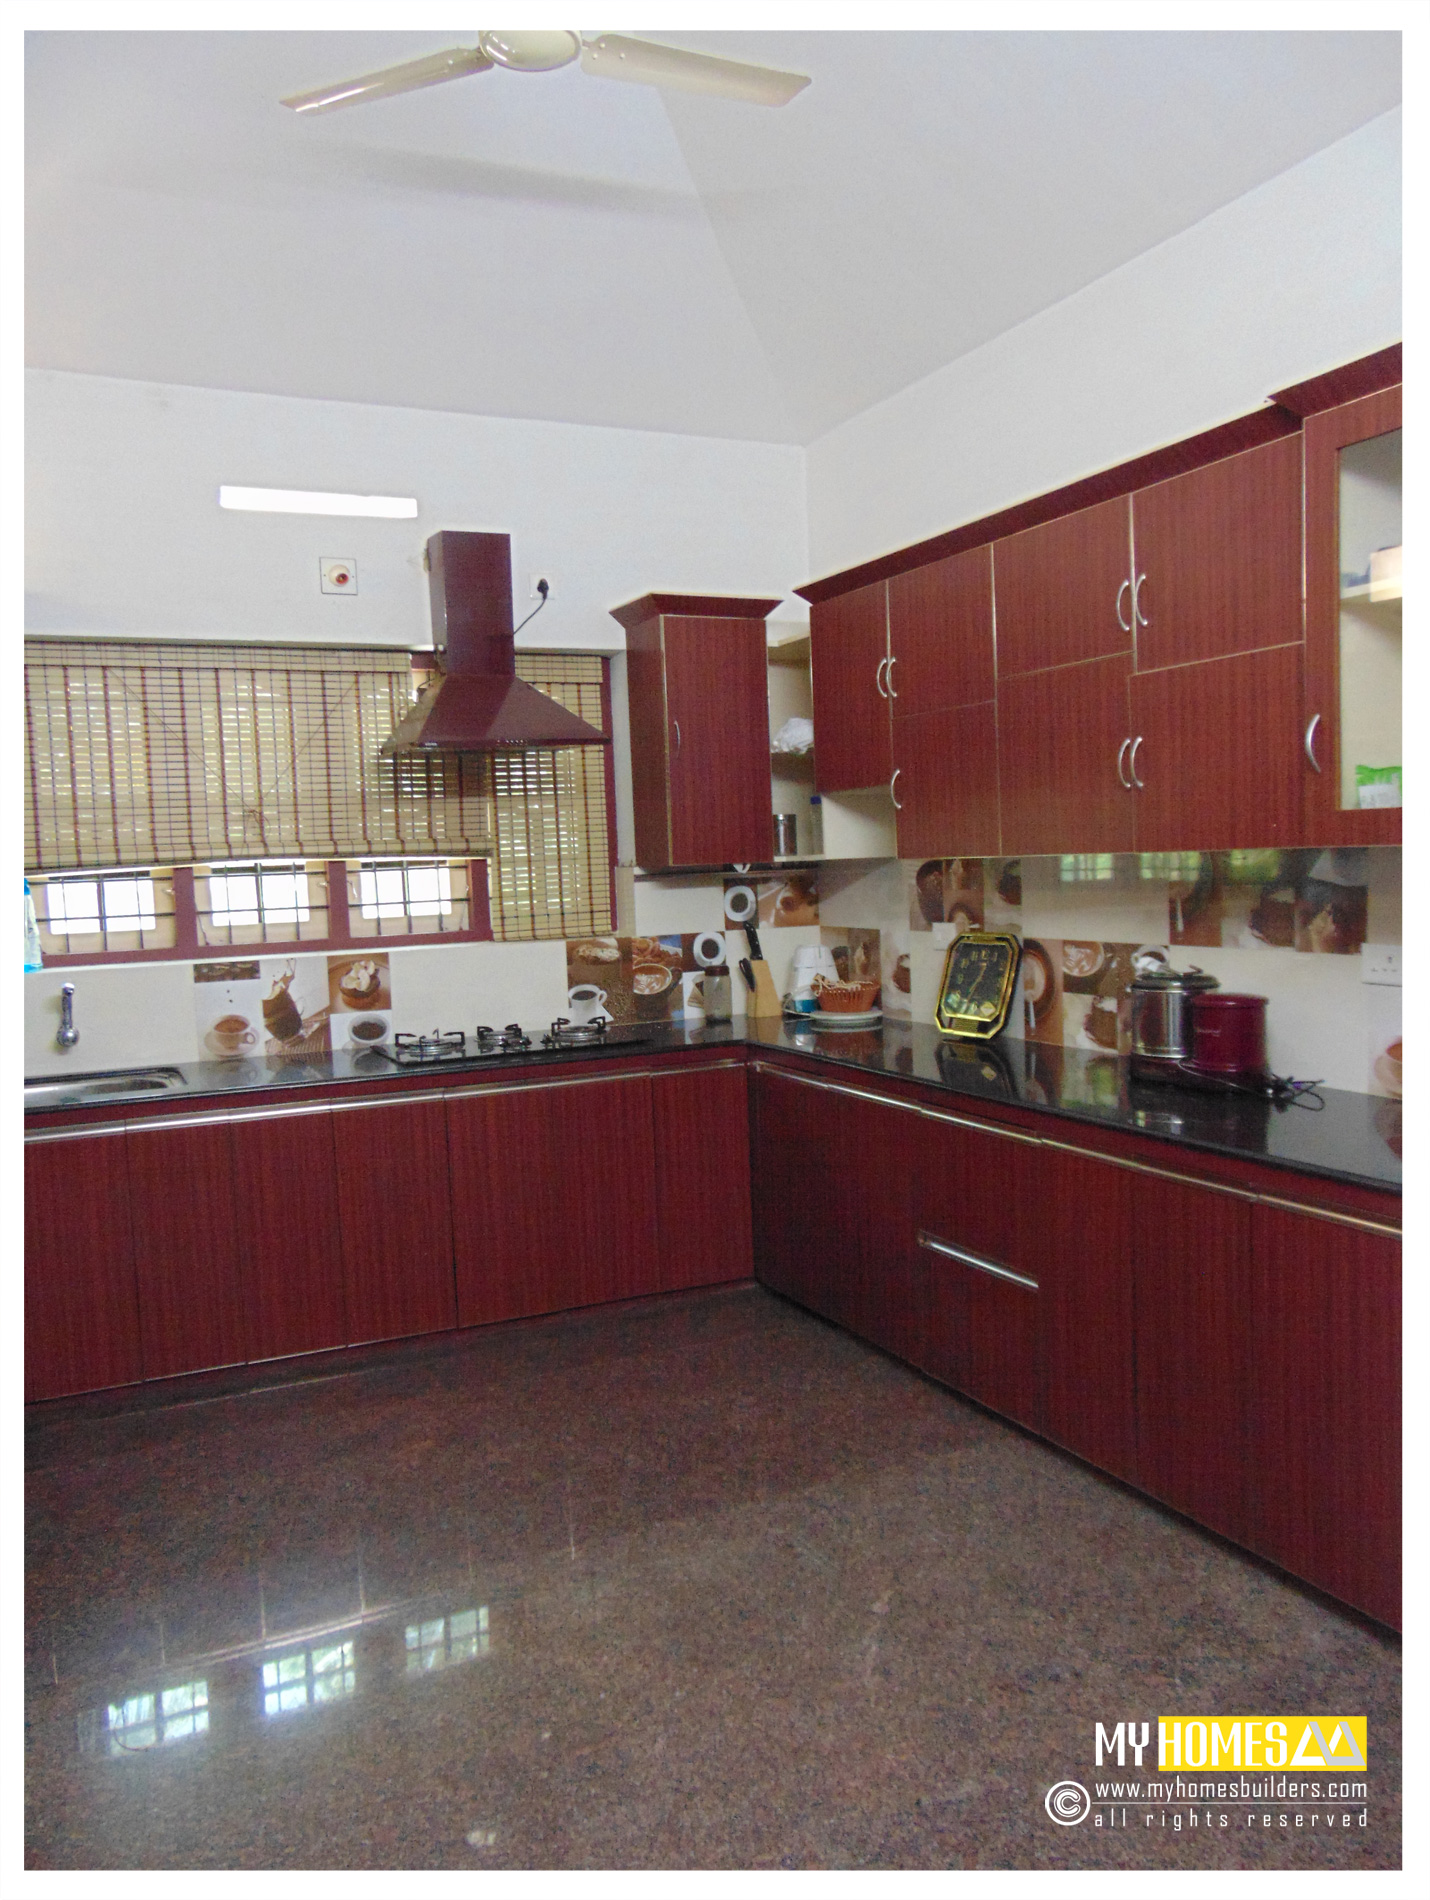 Latest kitchen design kerala in modular inteior designing for New latest kitchen design